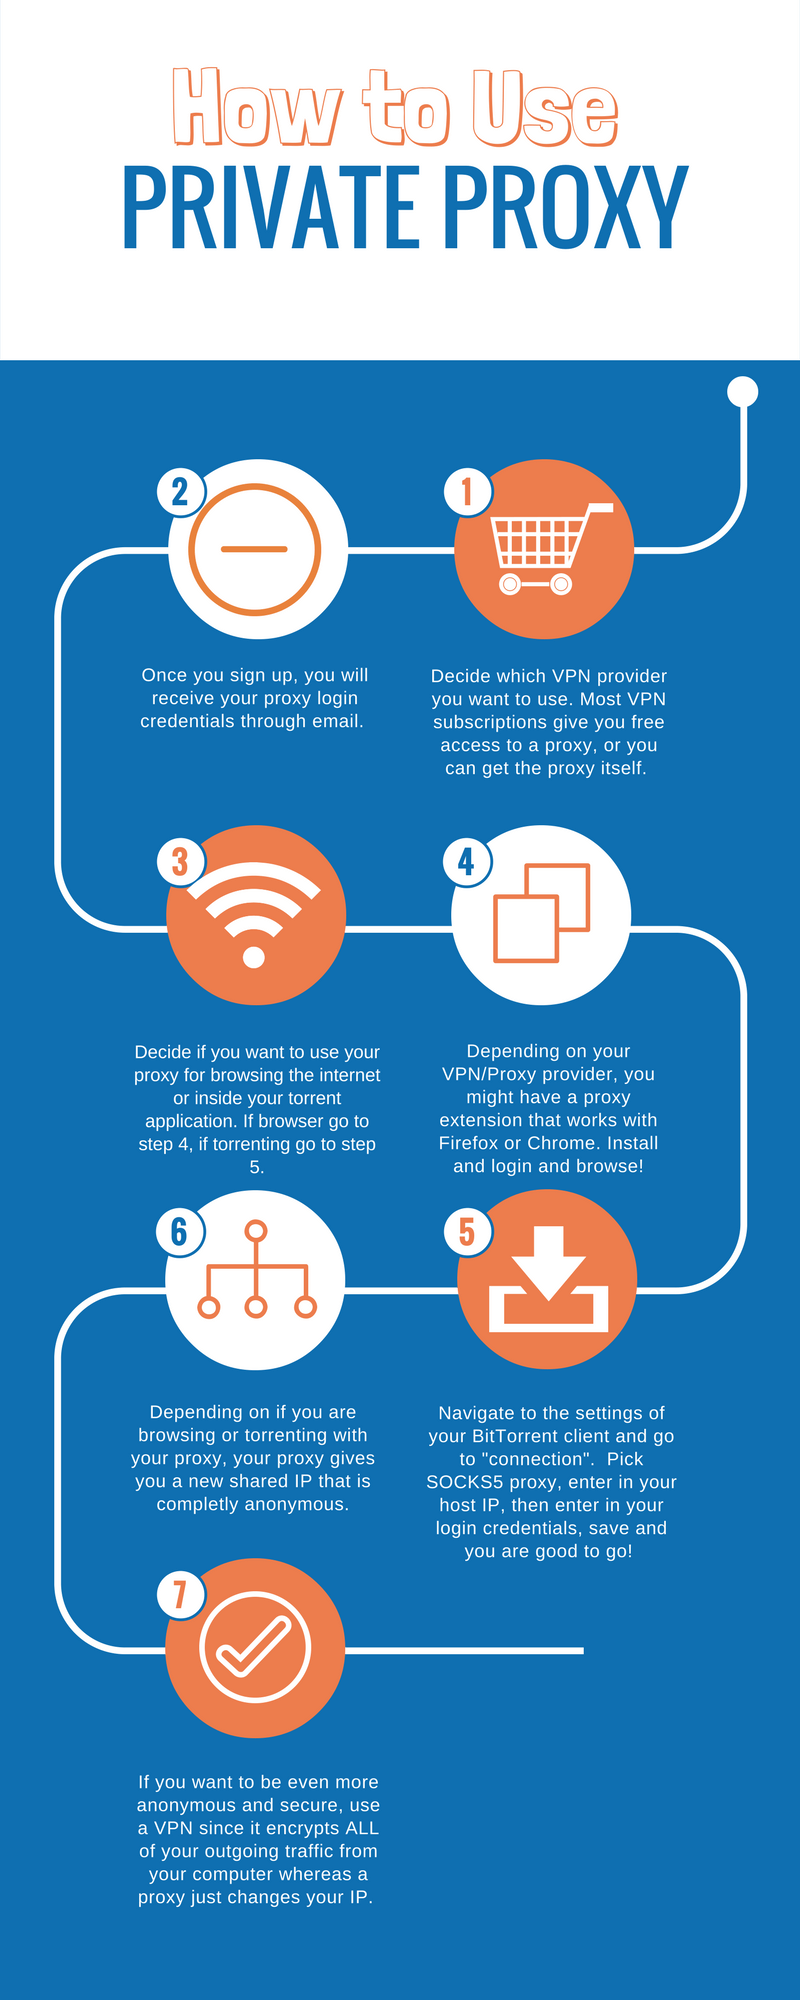 How to use a Private Proxy #infographic - Infographic List